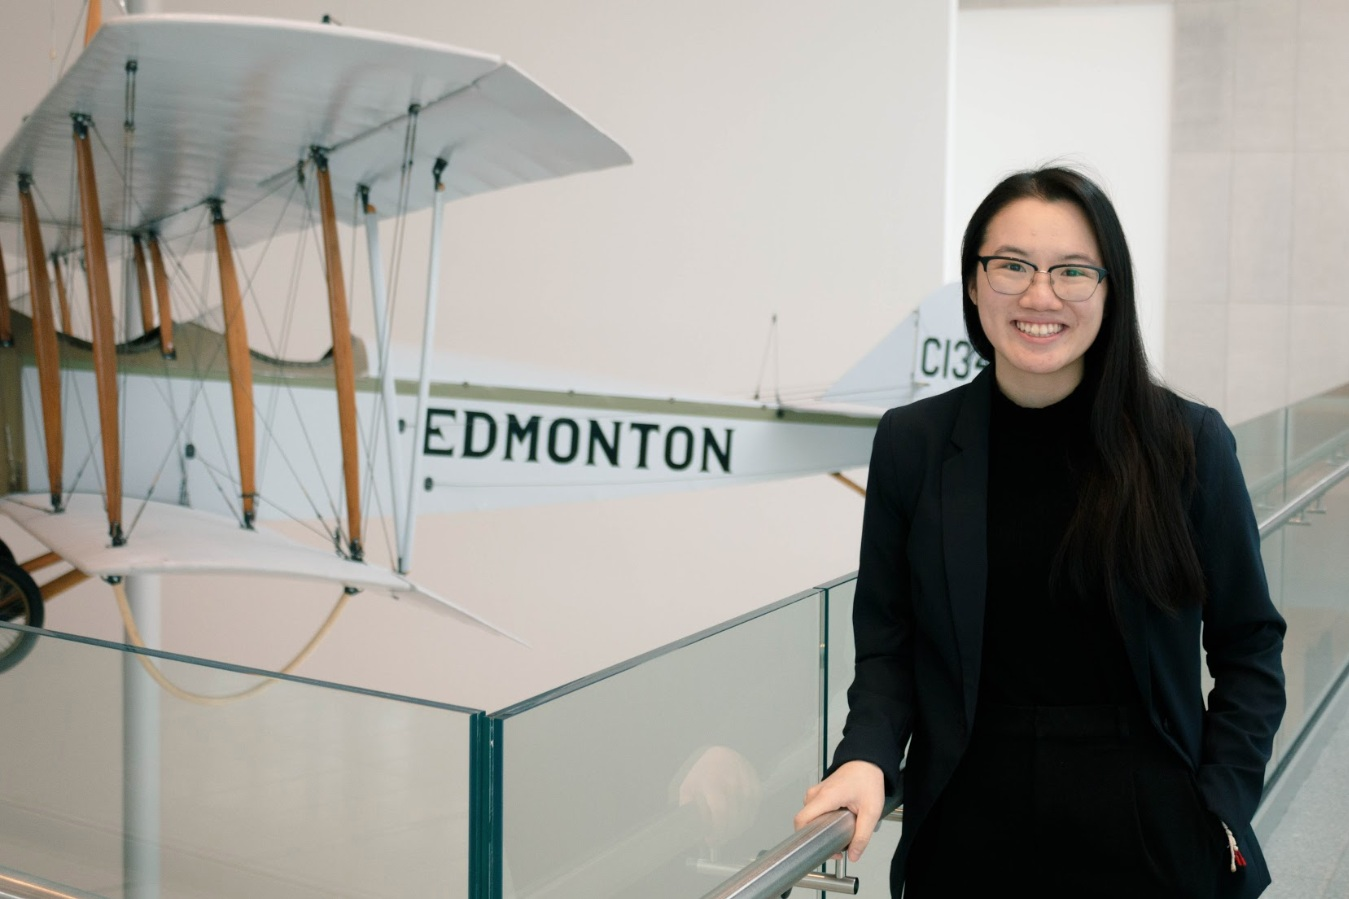 Leanne Yang  Logistics Director  Hi everyone! My name is Leanne and I am in my third year at the University of Alberta with a major in Operations Management. I was previously the President of AIESEC and hope to apply all the skills I learned, and to learn even more as part of the AIBC 2019 team. Alberta is an extremely beautiful province, and I'm excited to share all of its unique traits with you! I'm here to make sure everything goes smoothly, but in the meantime, feel free to talk to be about traveling or food! Also, I love spreadsheets - just ask me about my trackers.